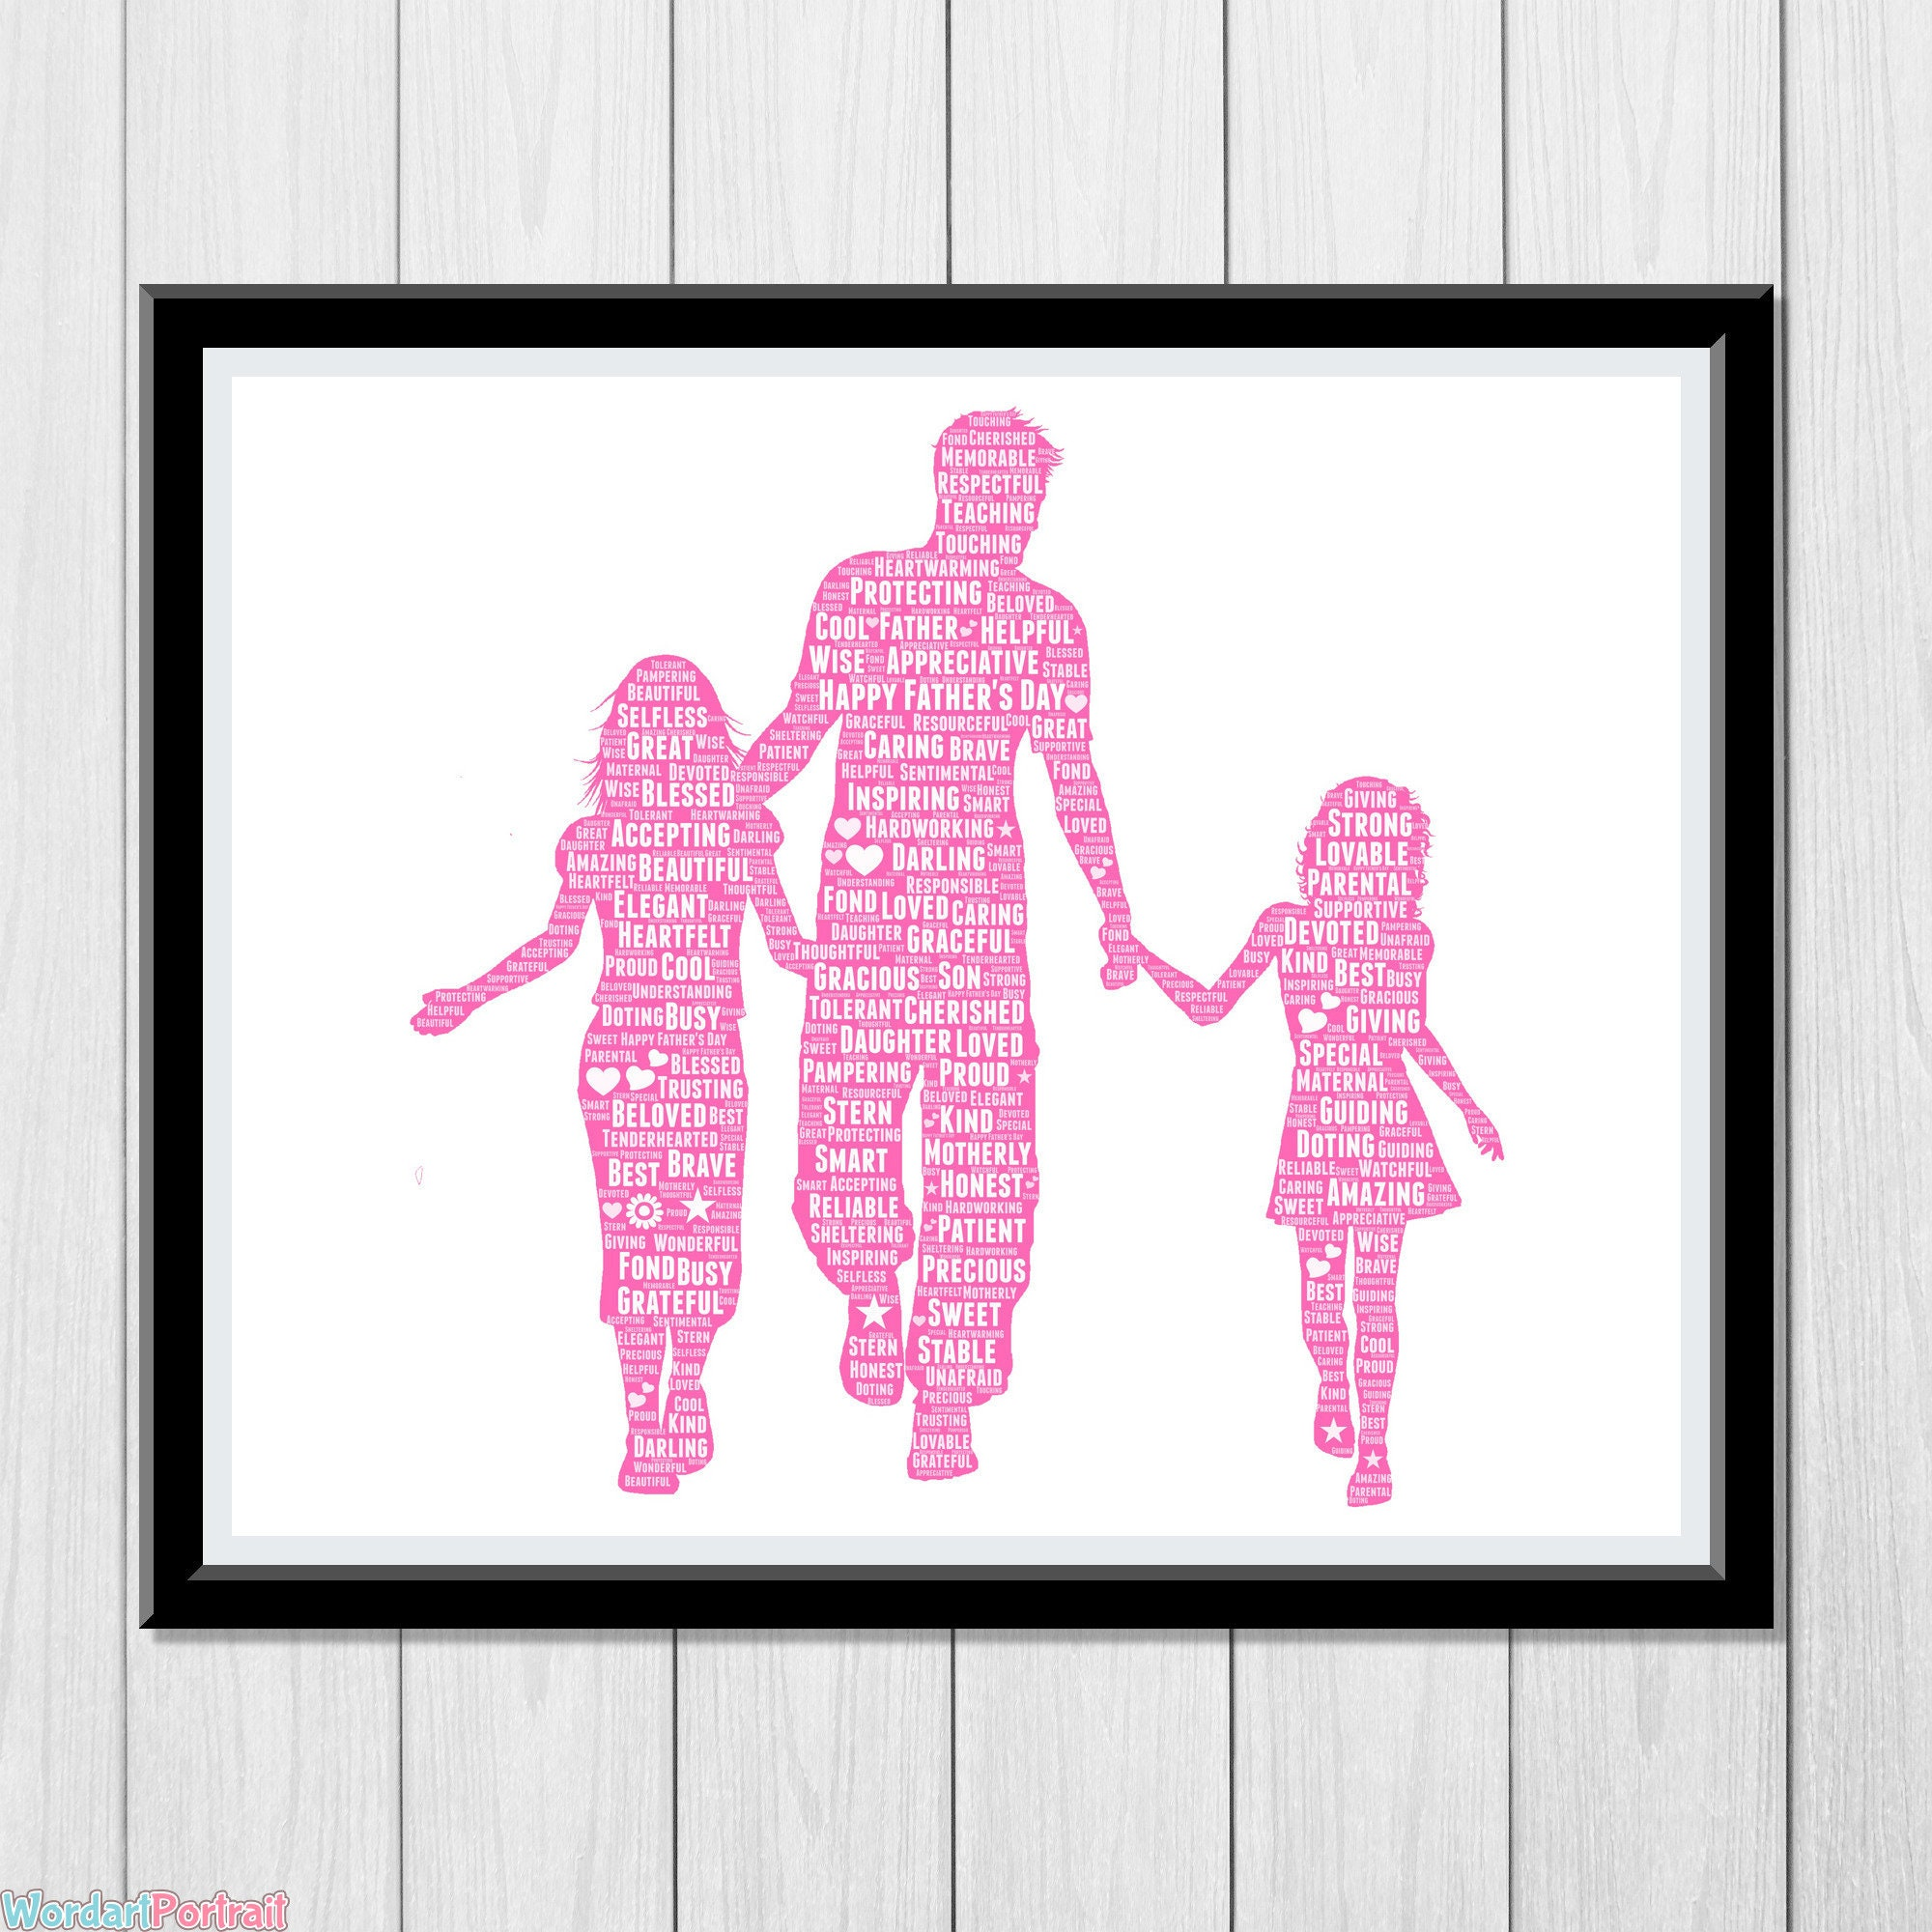 Happy Fathers Day Gift - Dad with Two Daughters - Personalized Word Art Print for Dad Gift from Wife Gift from Daughter - Custom Wall Decor